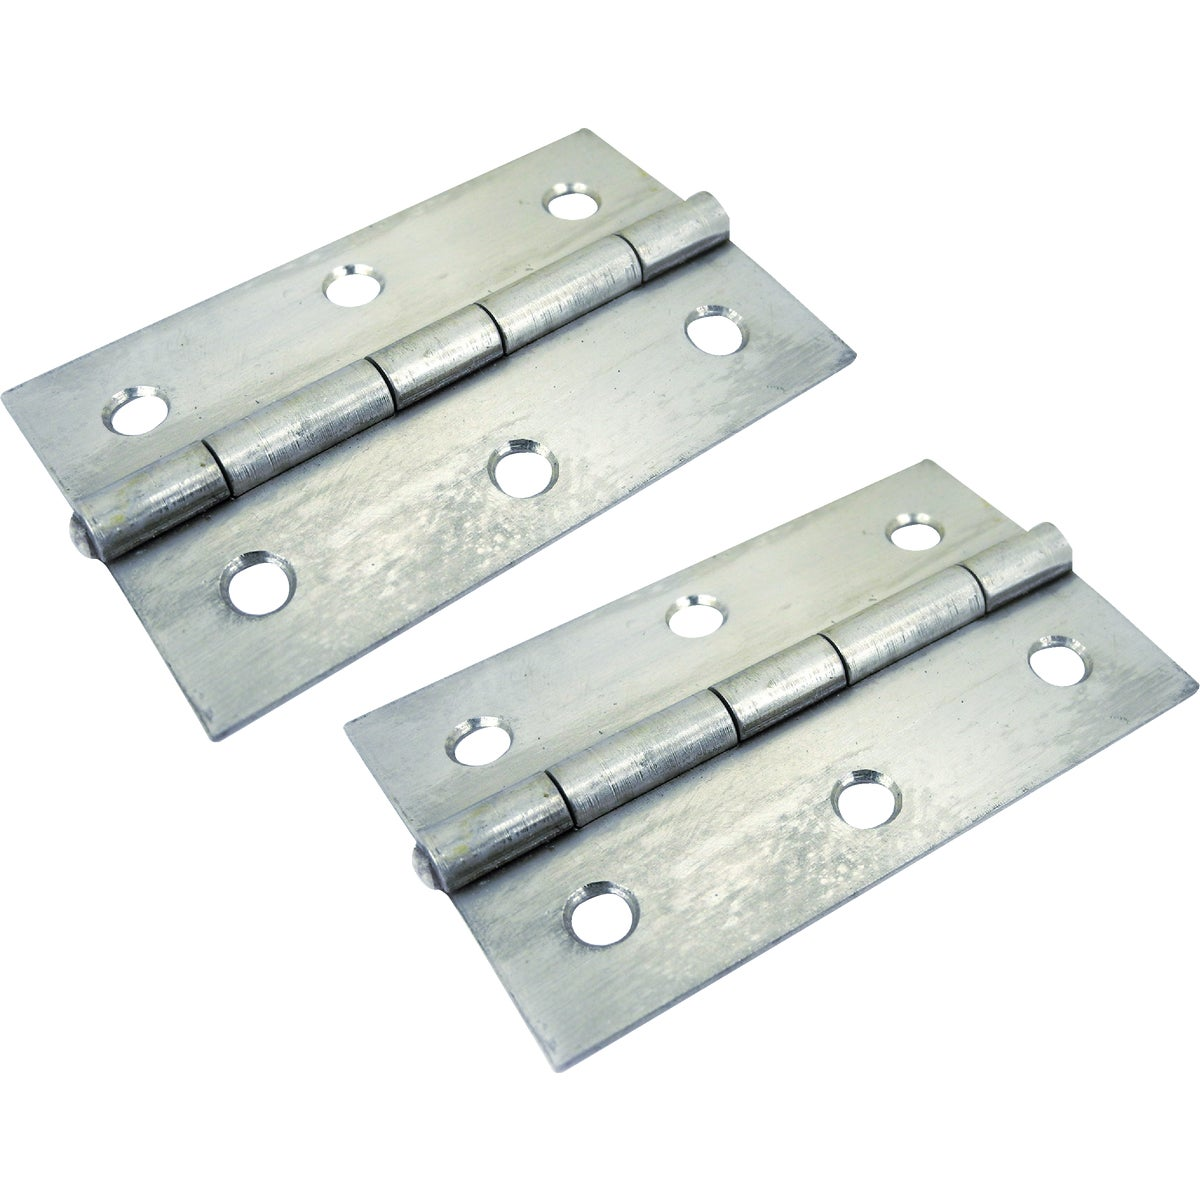 2X3 EXTRUDED BUTT HINGE - 34921 by Seachoice Prod